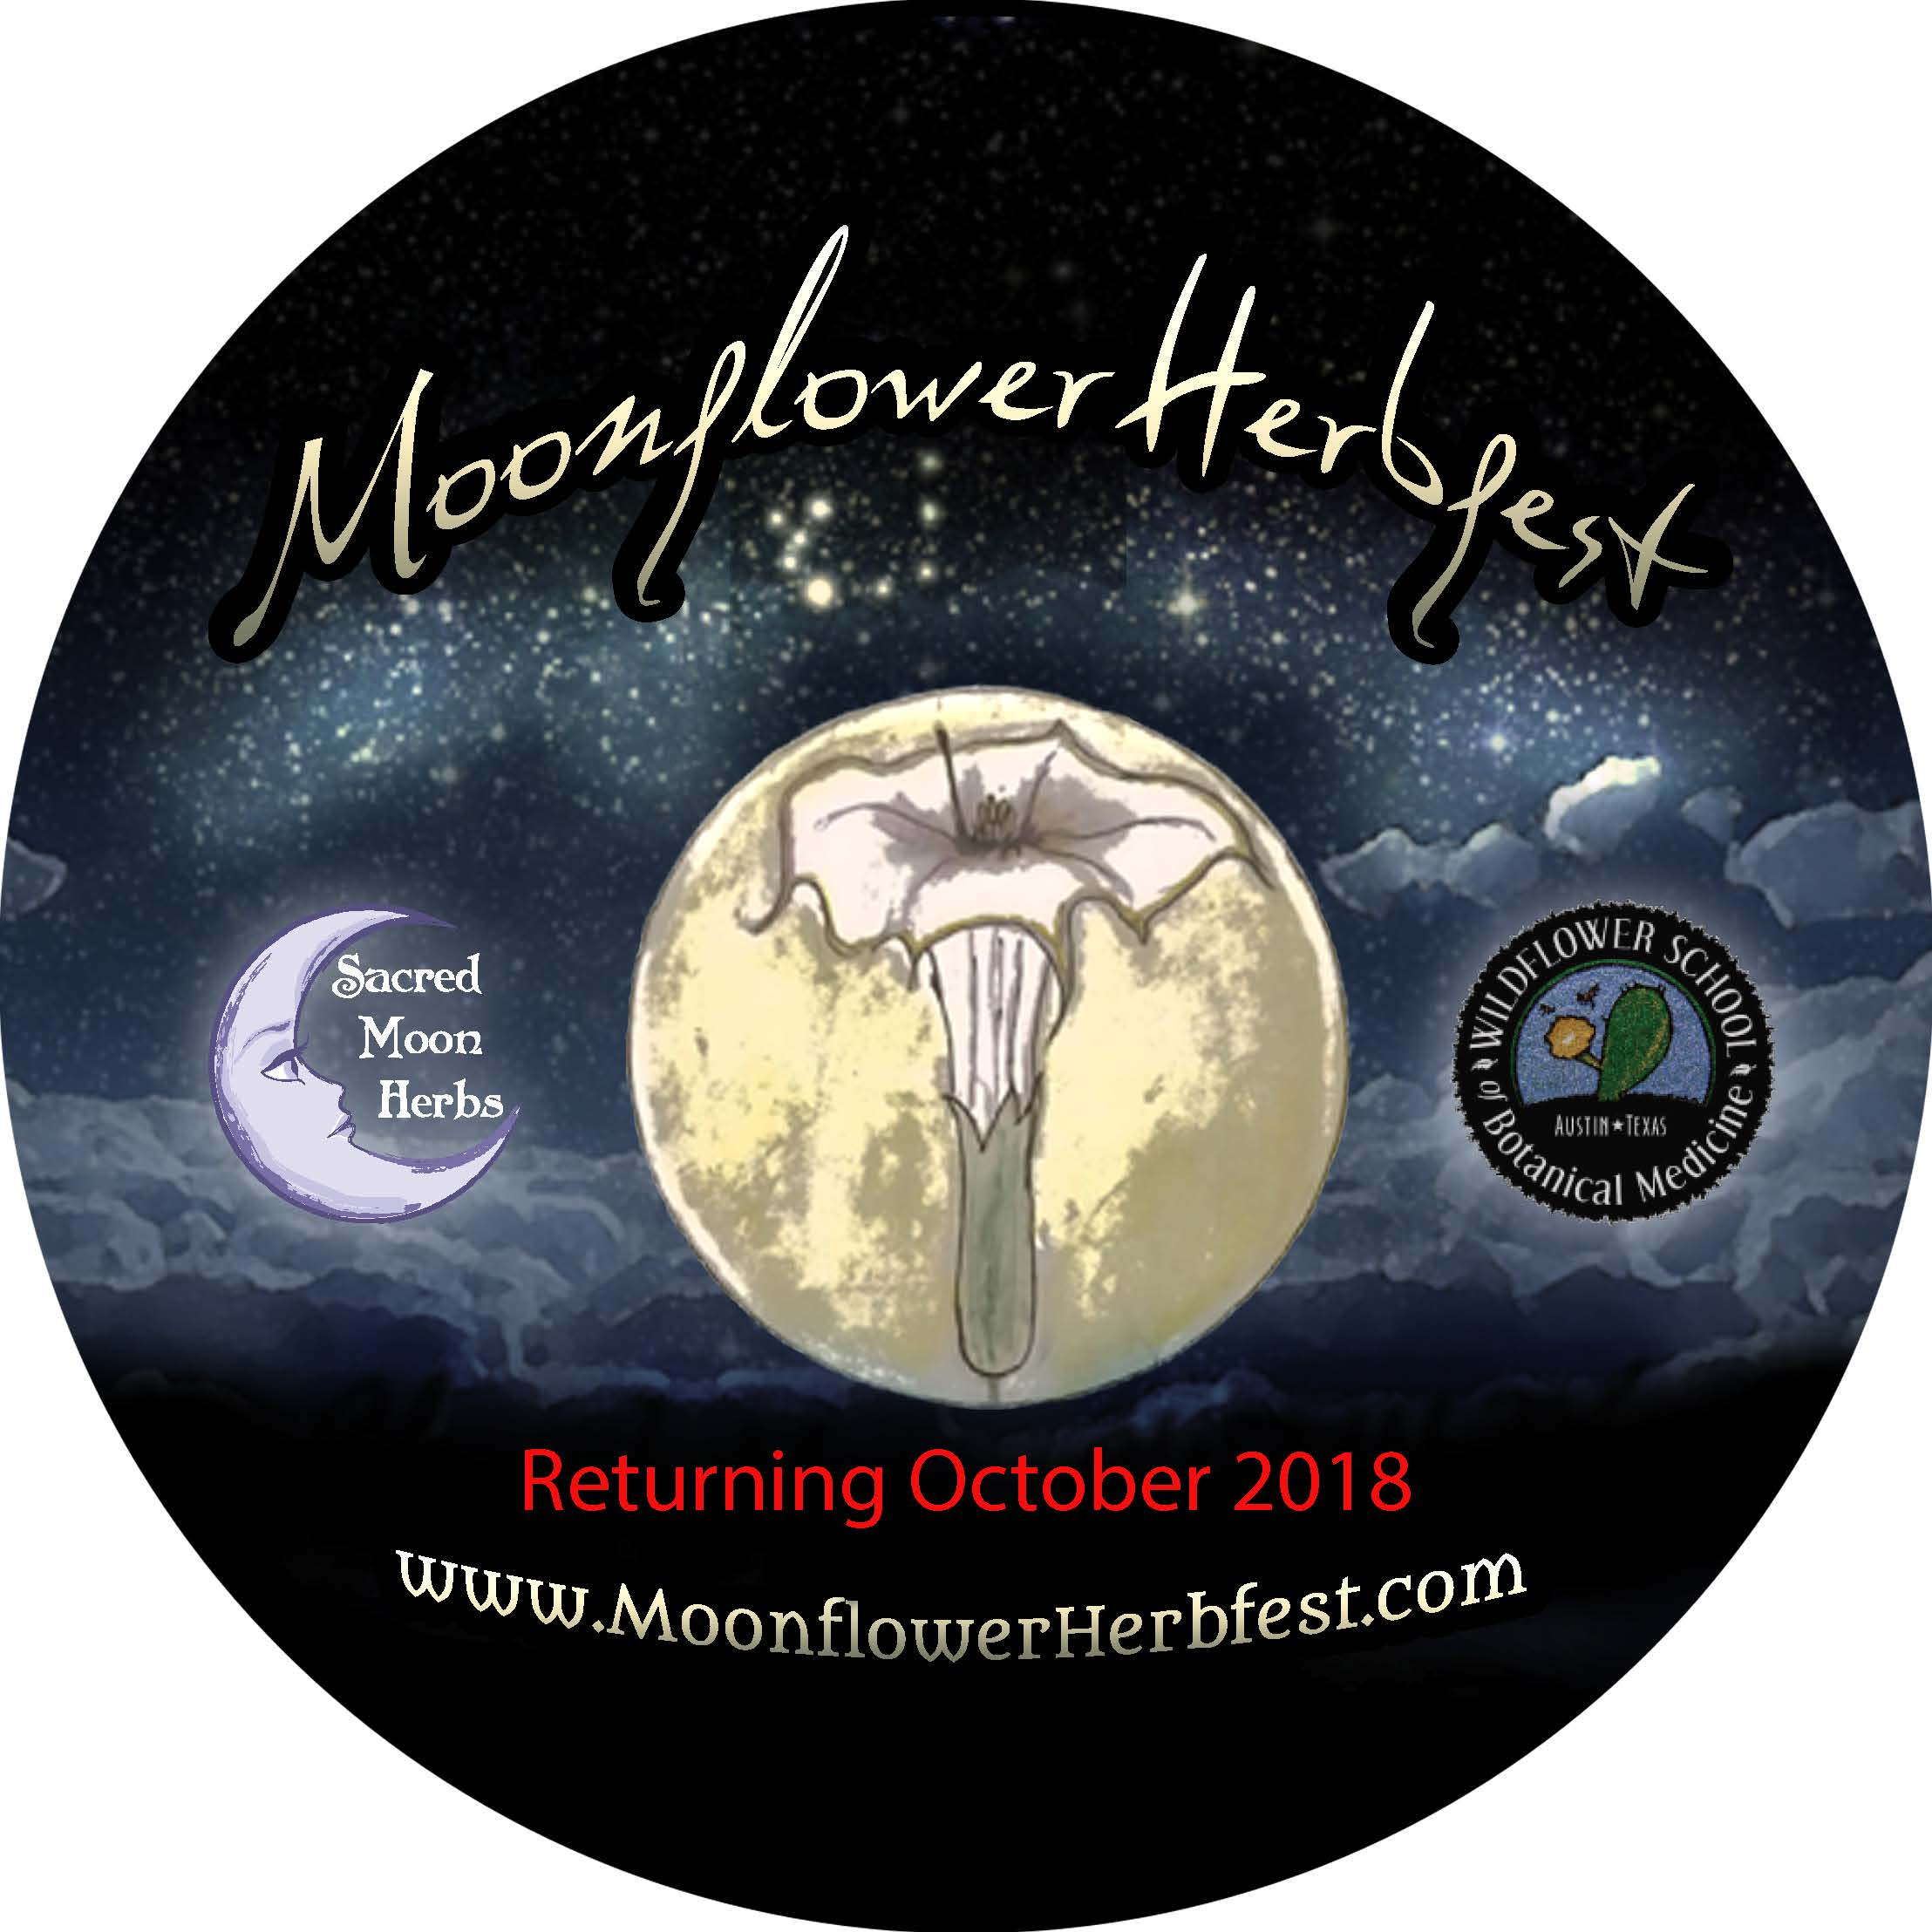 Moonflower Herb Fest 2018